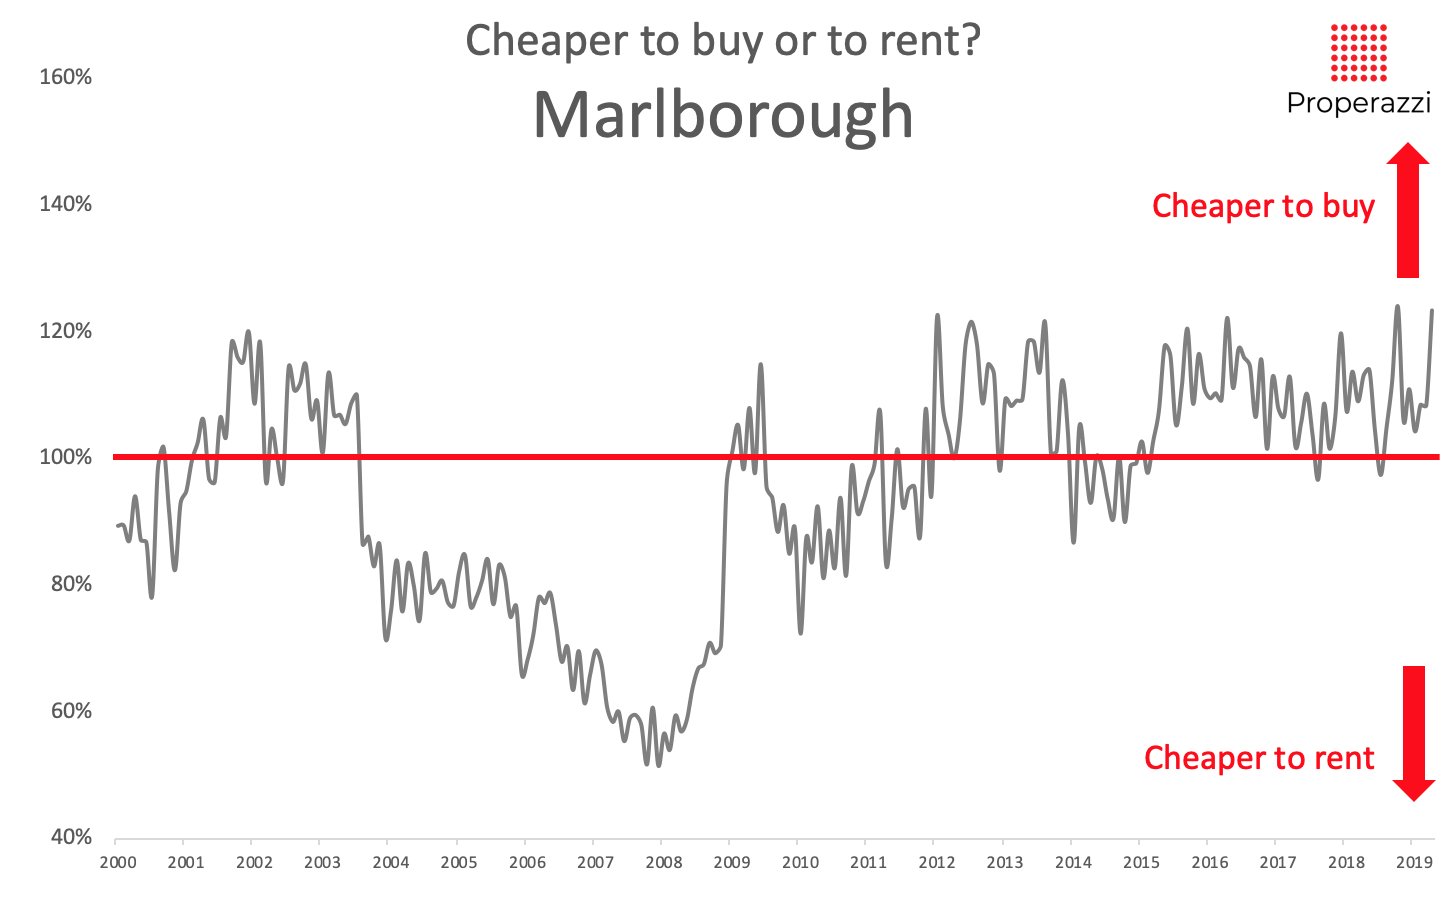 To rent or to buy in Marlborough May 2019